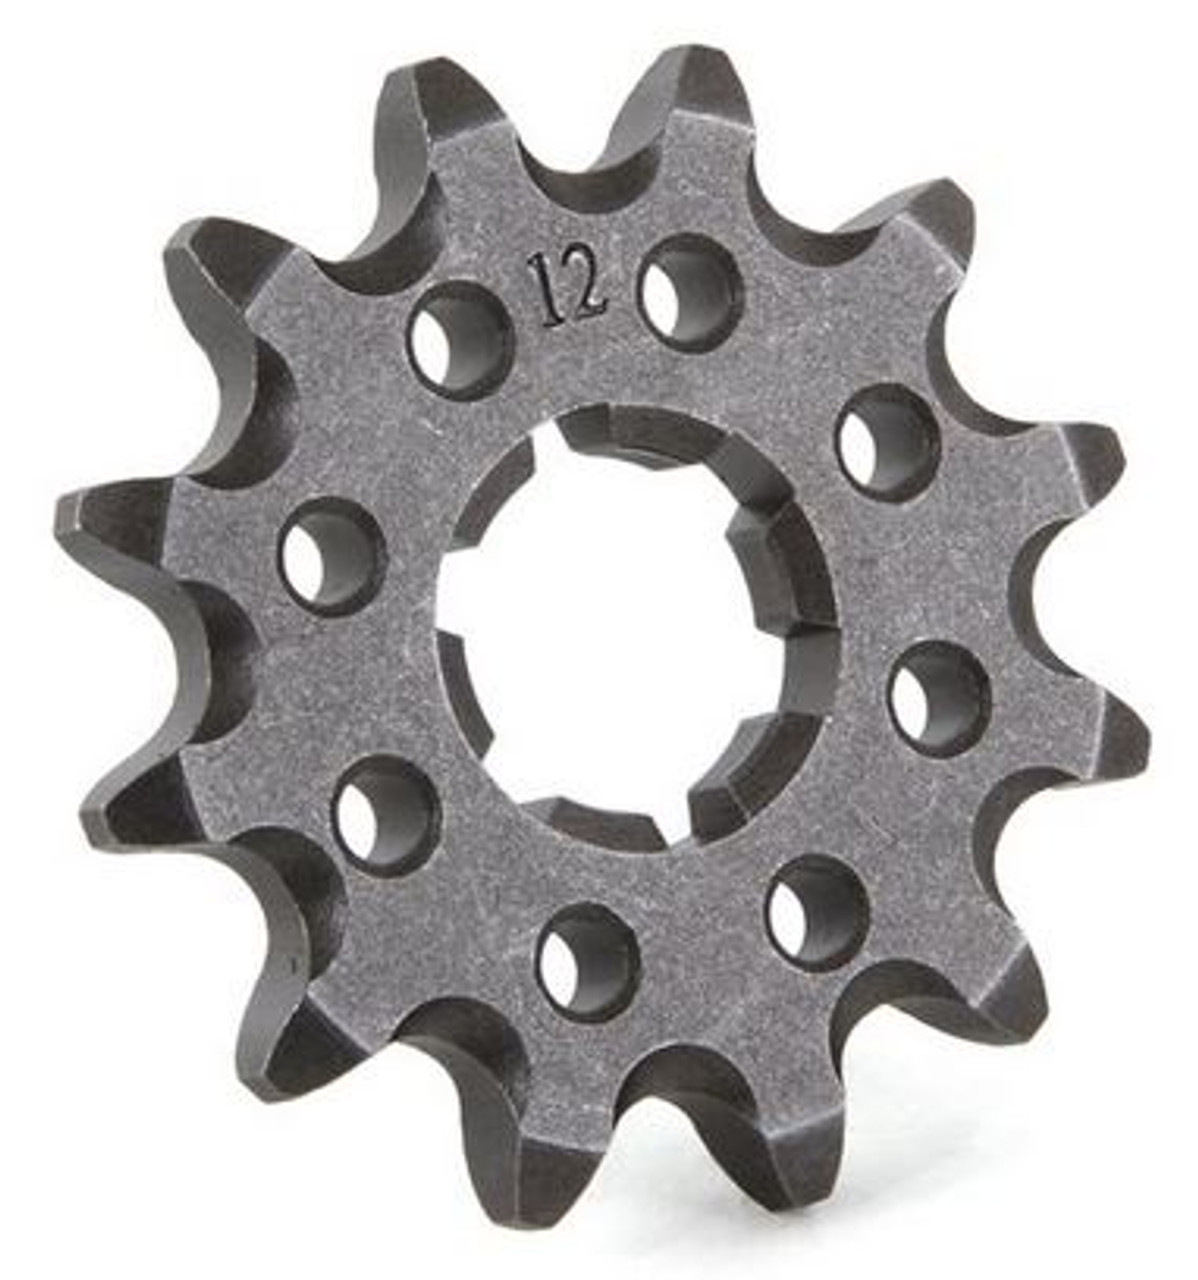 KTM 450 EXC F 2003-2019 FRONT SPROCKET 13 14 15 TOOTH PROX